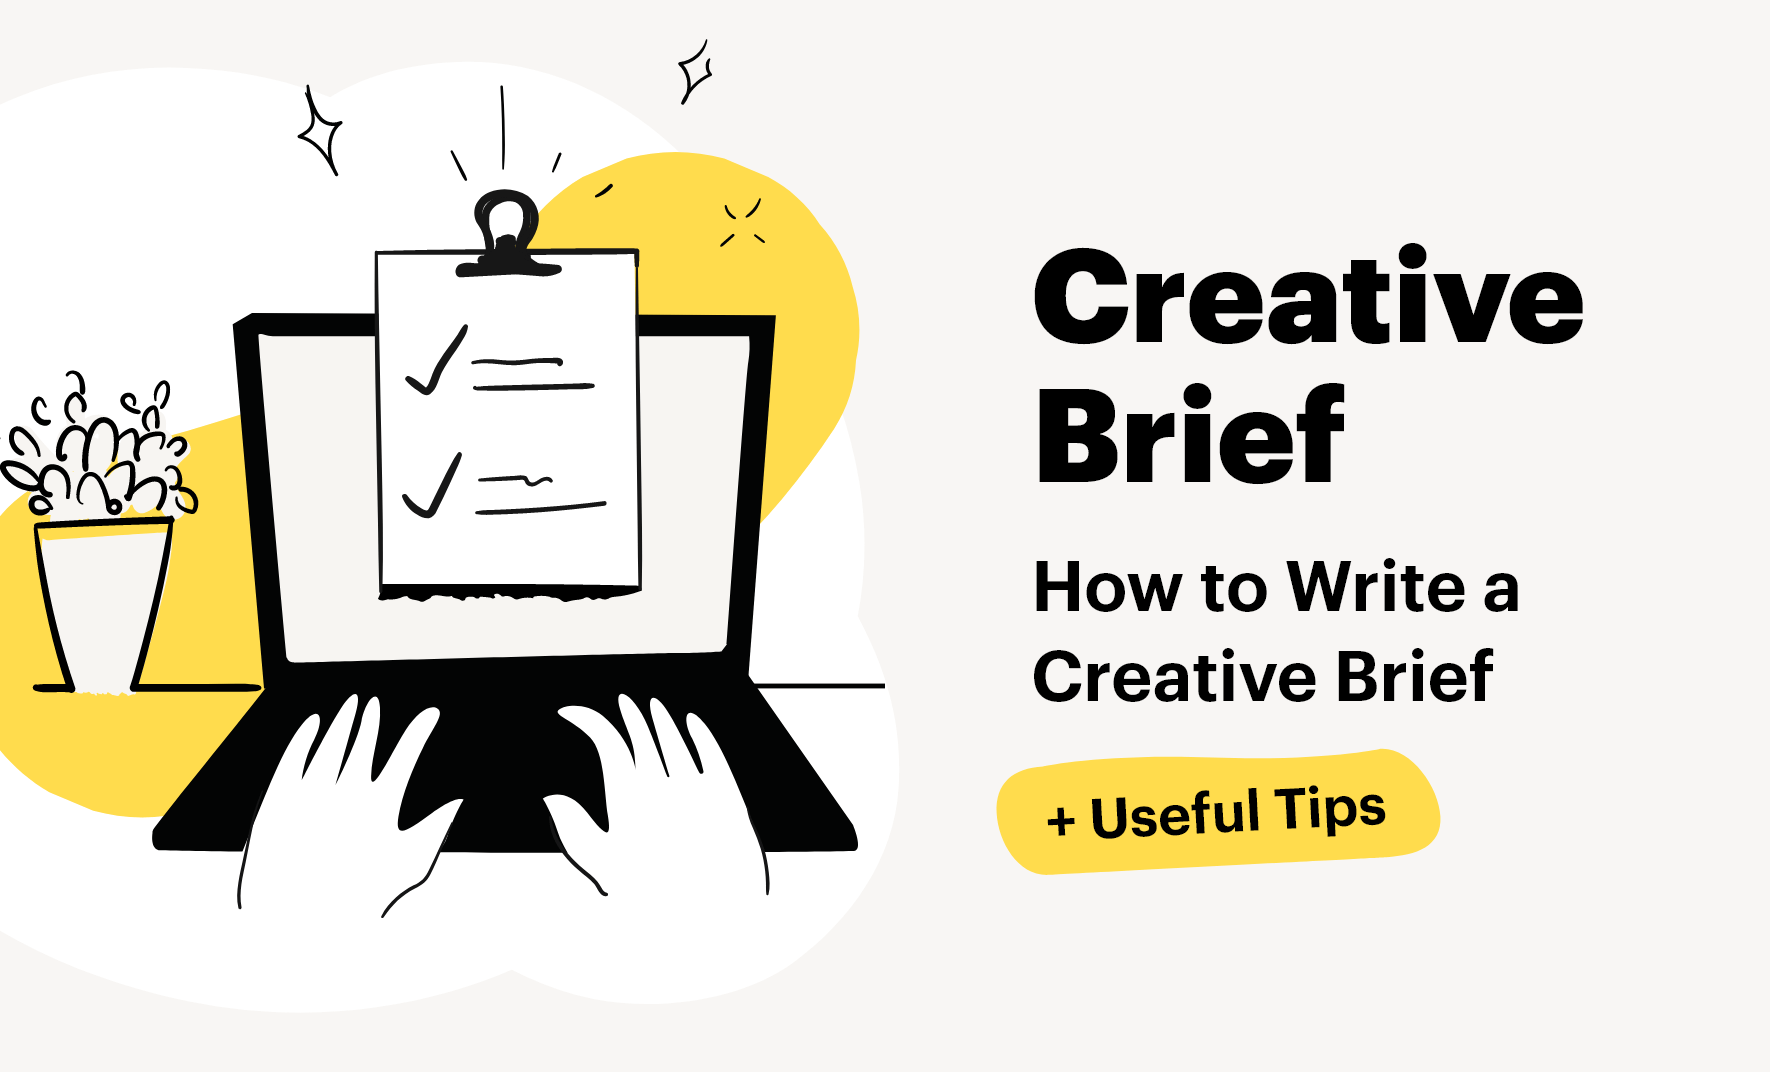 How to Write a Creative Brief + Useful Tips